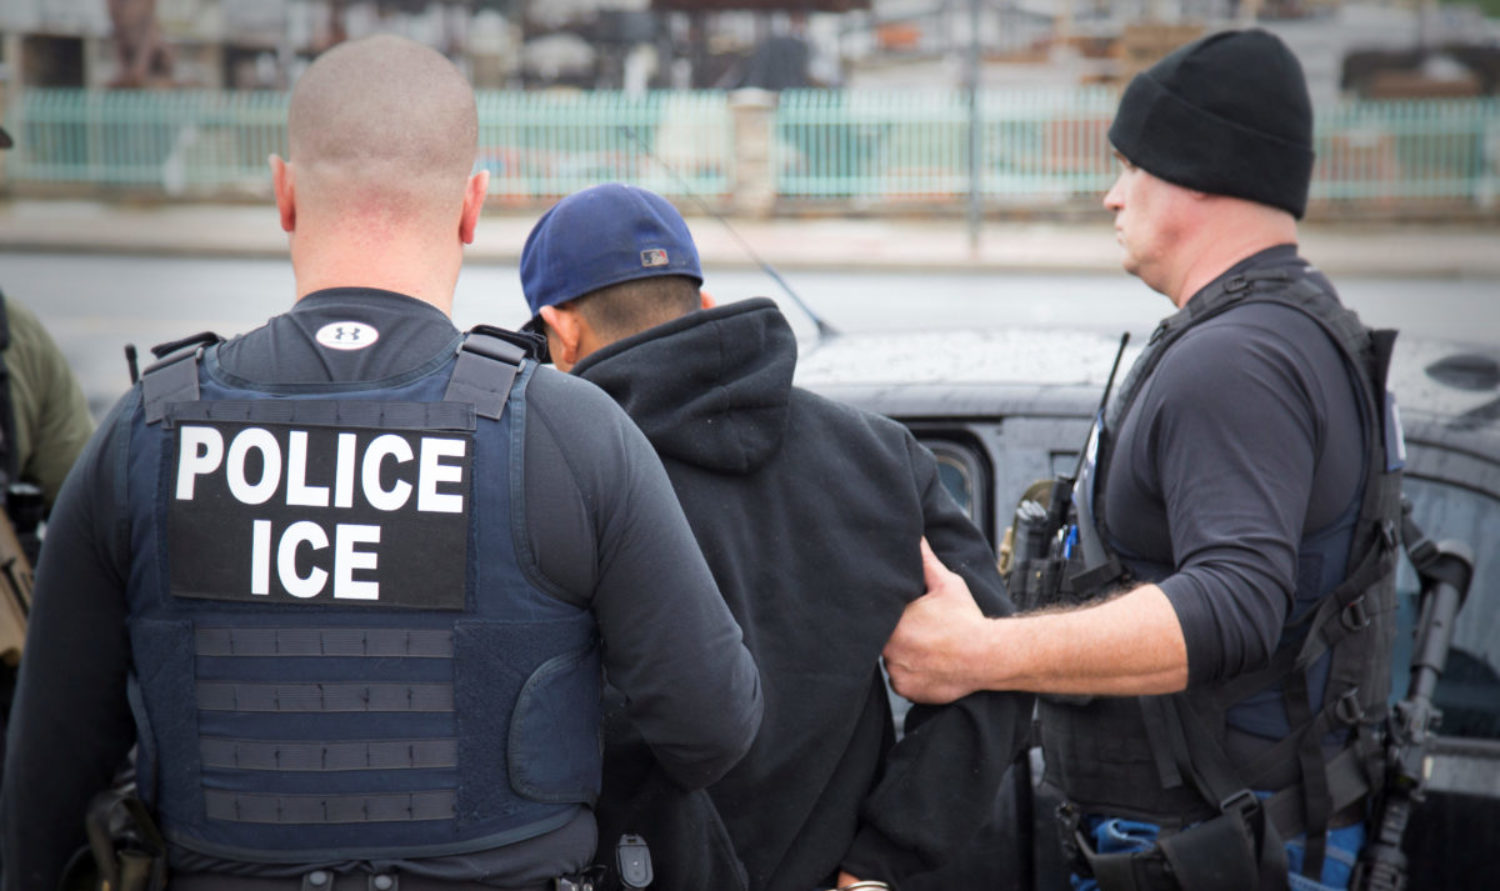 U.S. Immigration and Customs Enforcement (ICE) officers detain a suspect as they conduct a targeted enforcement operation in Los Angeles, California, U.S. on February 7, 2017. Picture taken on February 7, 2017. Courtesy Charles Reed/U.S. REUTERS